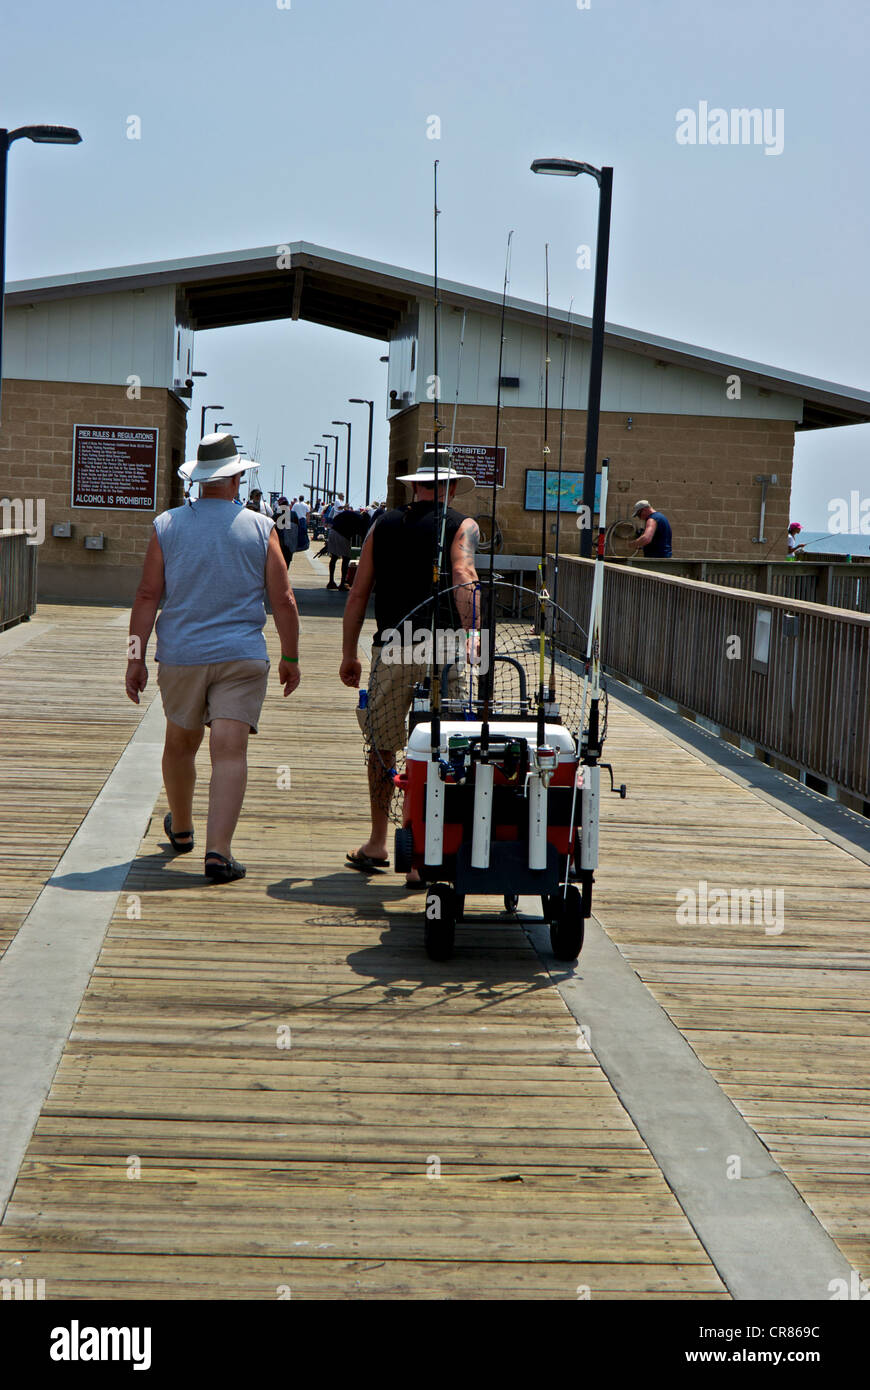 Anglers towing fishing tackle cart Gulf Shores State Park Alabama sport angling pier boardwalk Stock Photo